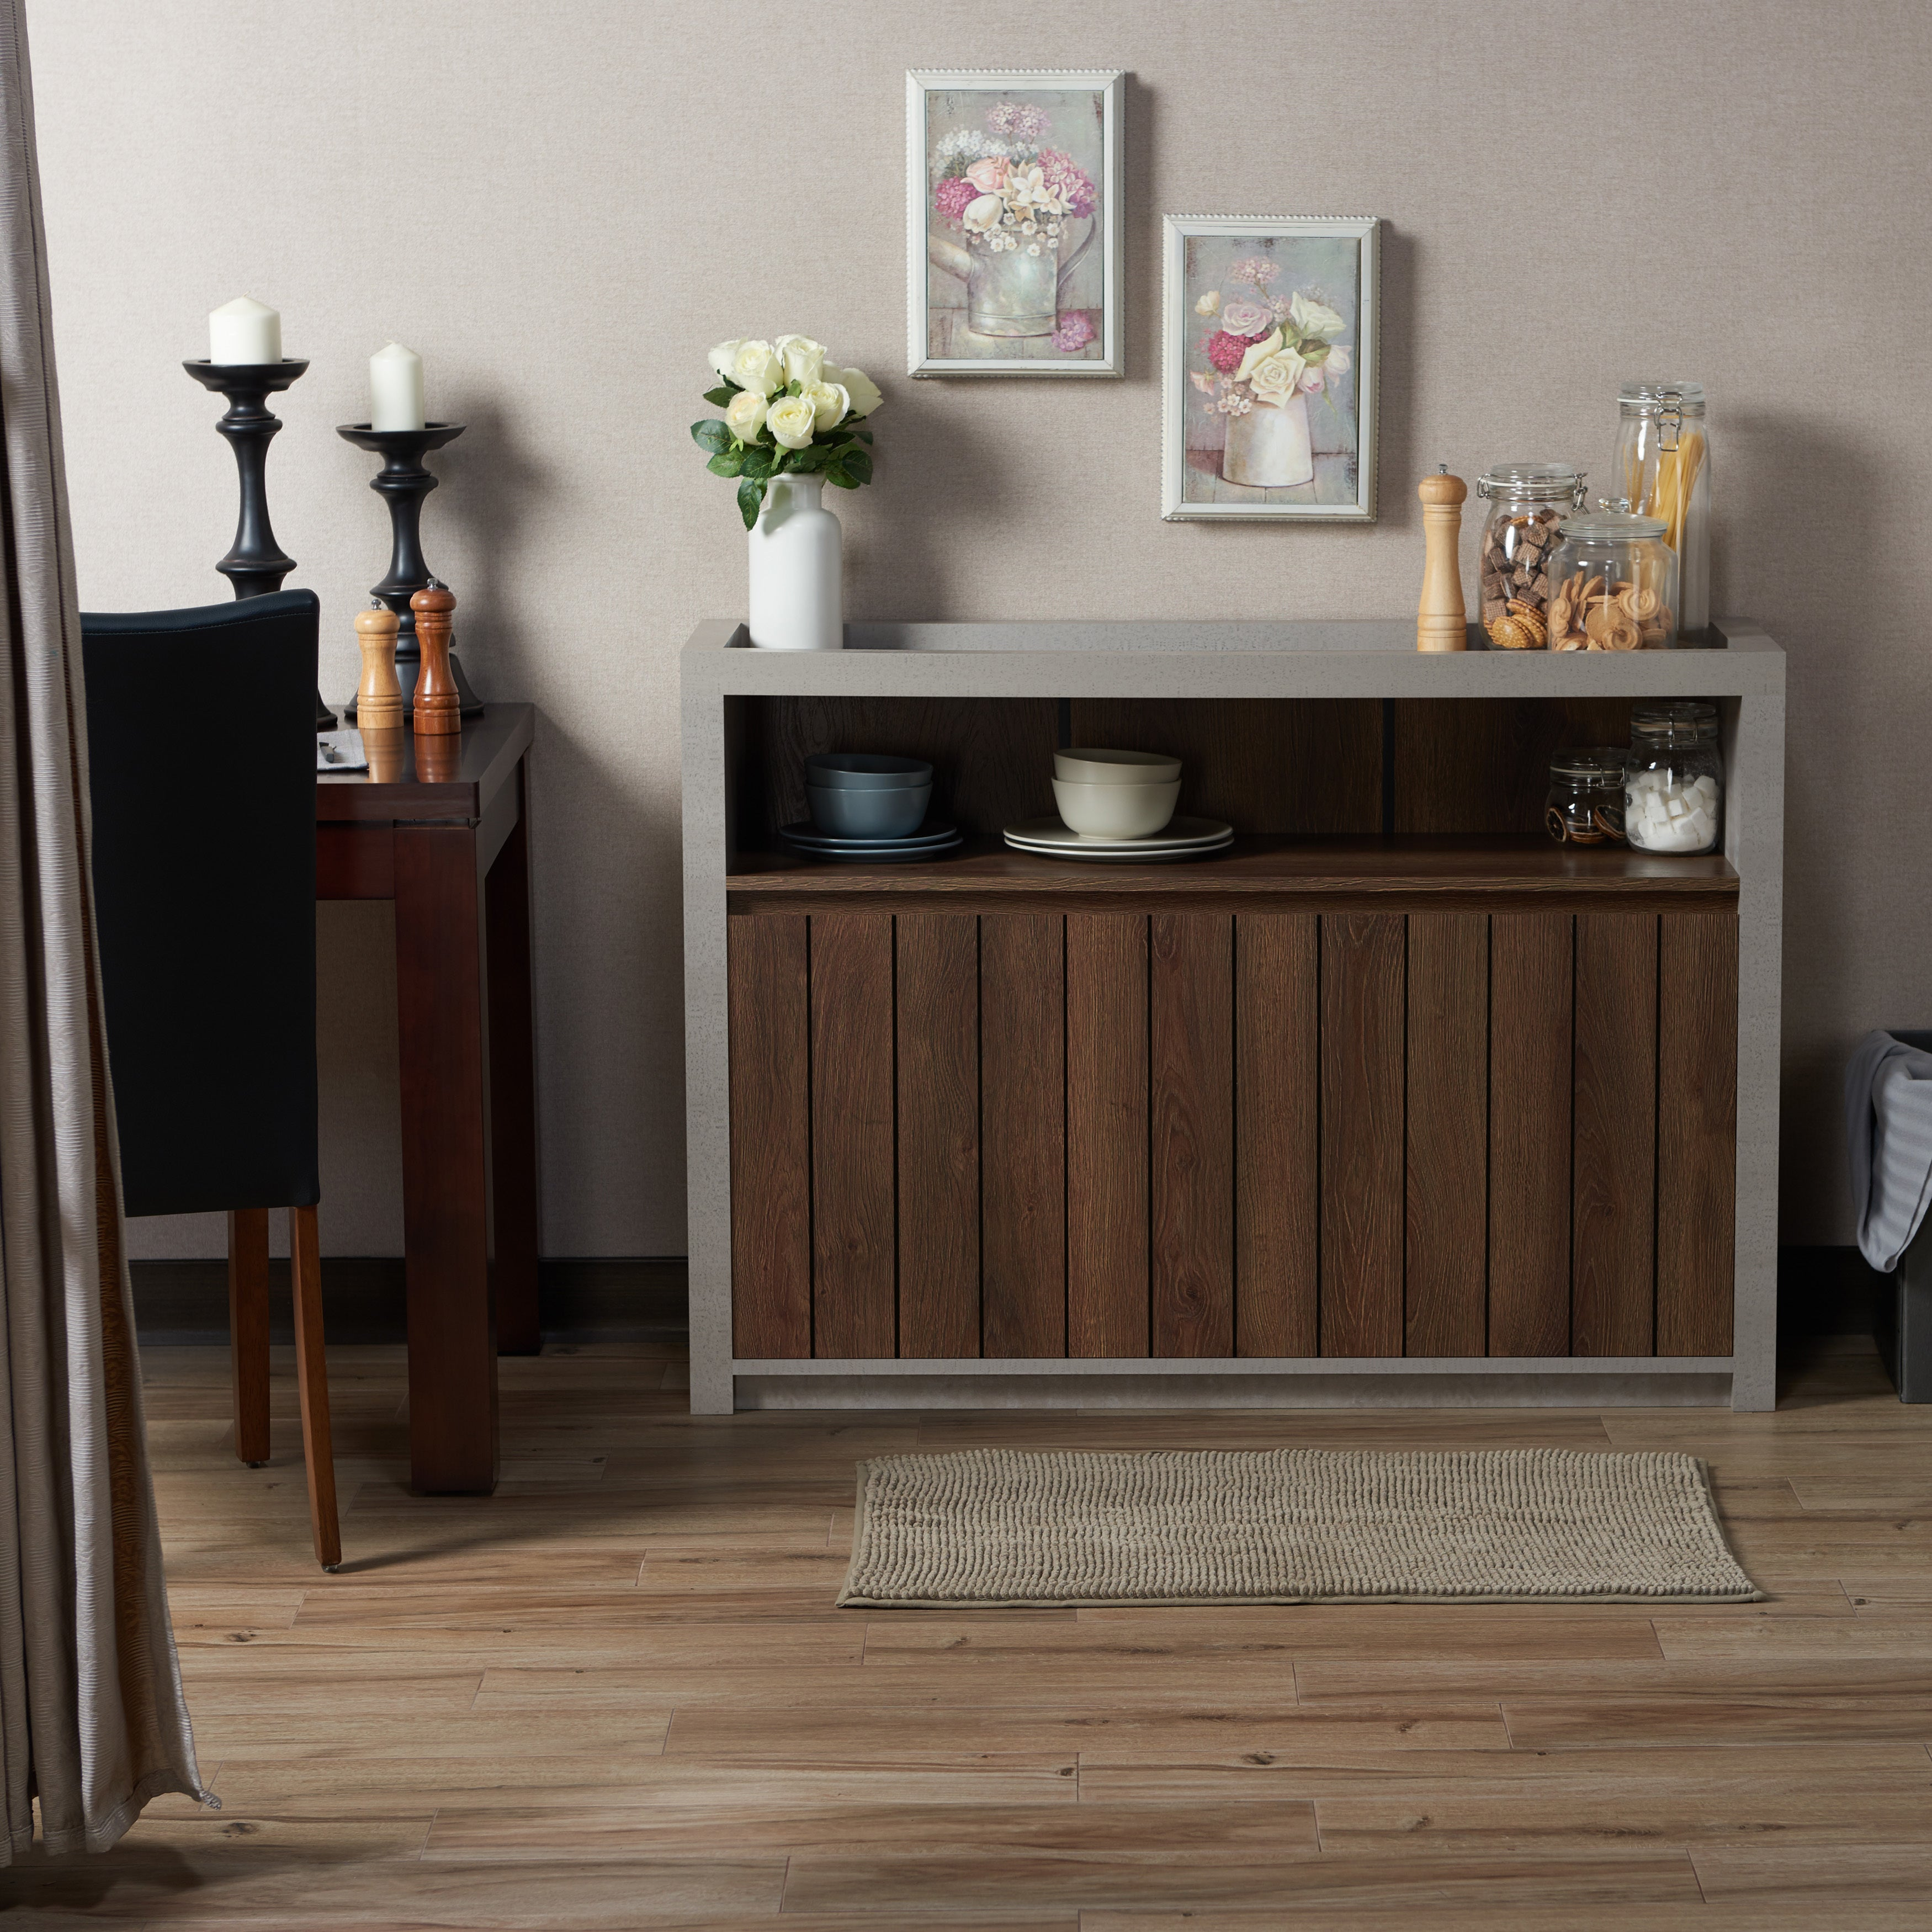 Furniture Of America Lamont Industrial Cement Like Multi Storage Dining  Buffet   Free Shipping Today   Overstock   23111979